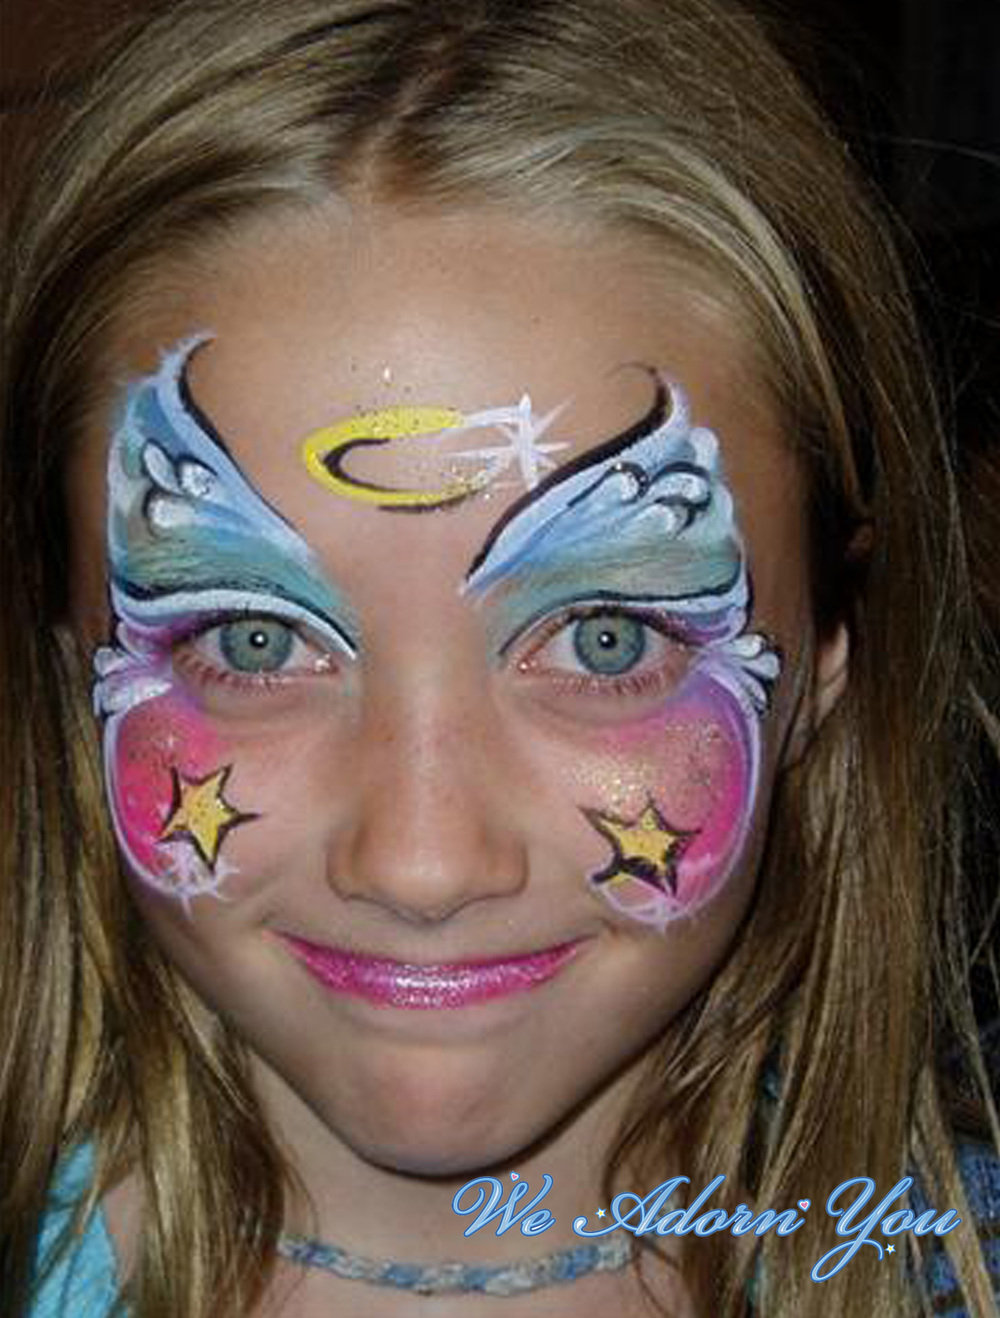 Face Painting Angell- We Adorn You.jpg